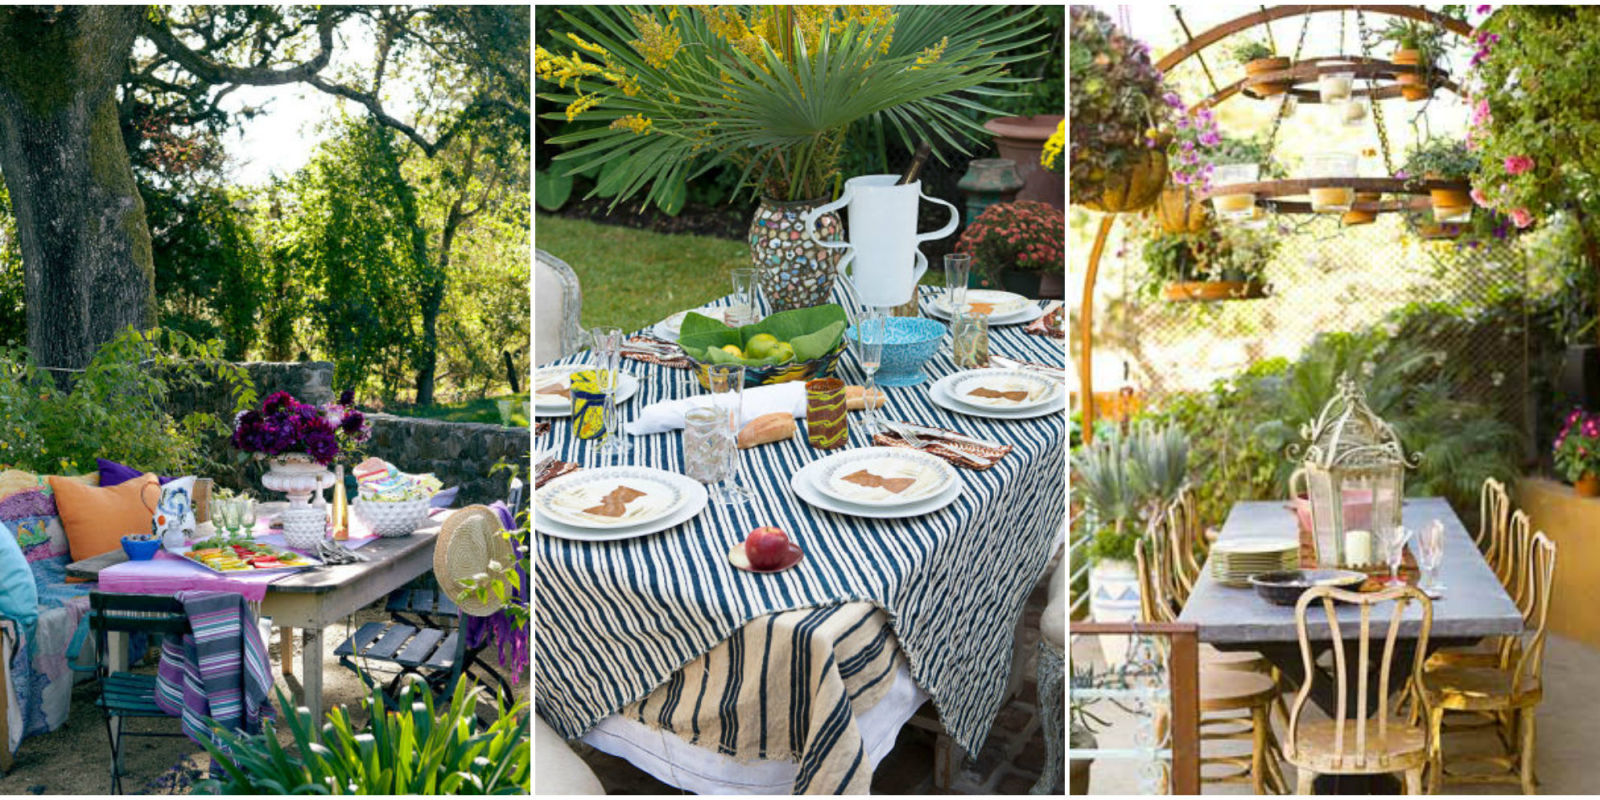 40 fun summer party ideas themes and decorations for for Outside decorations for summer